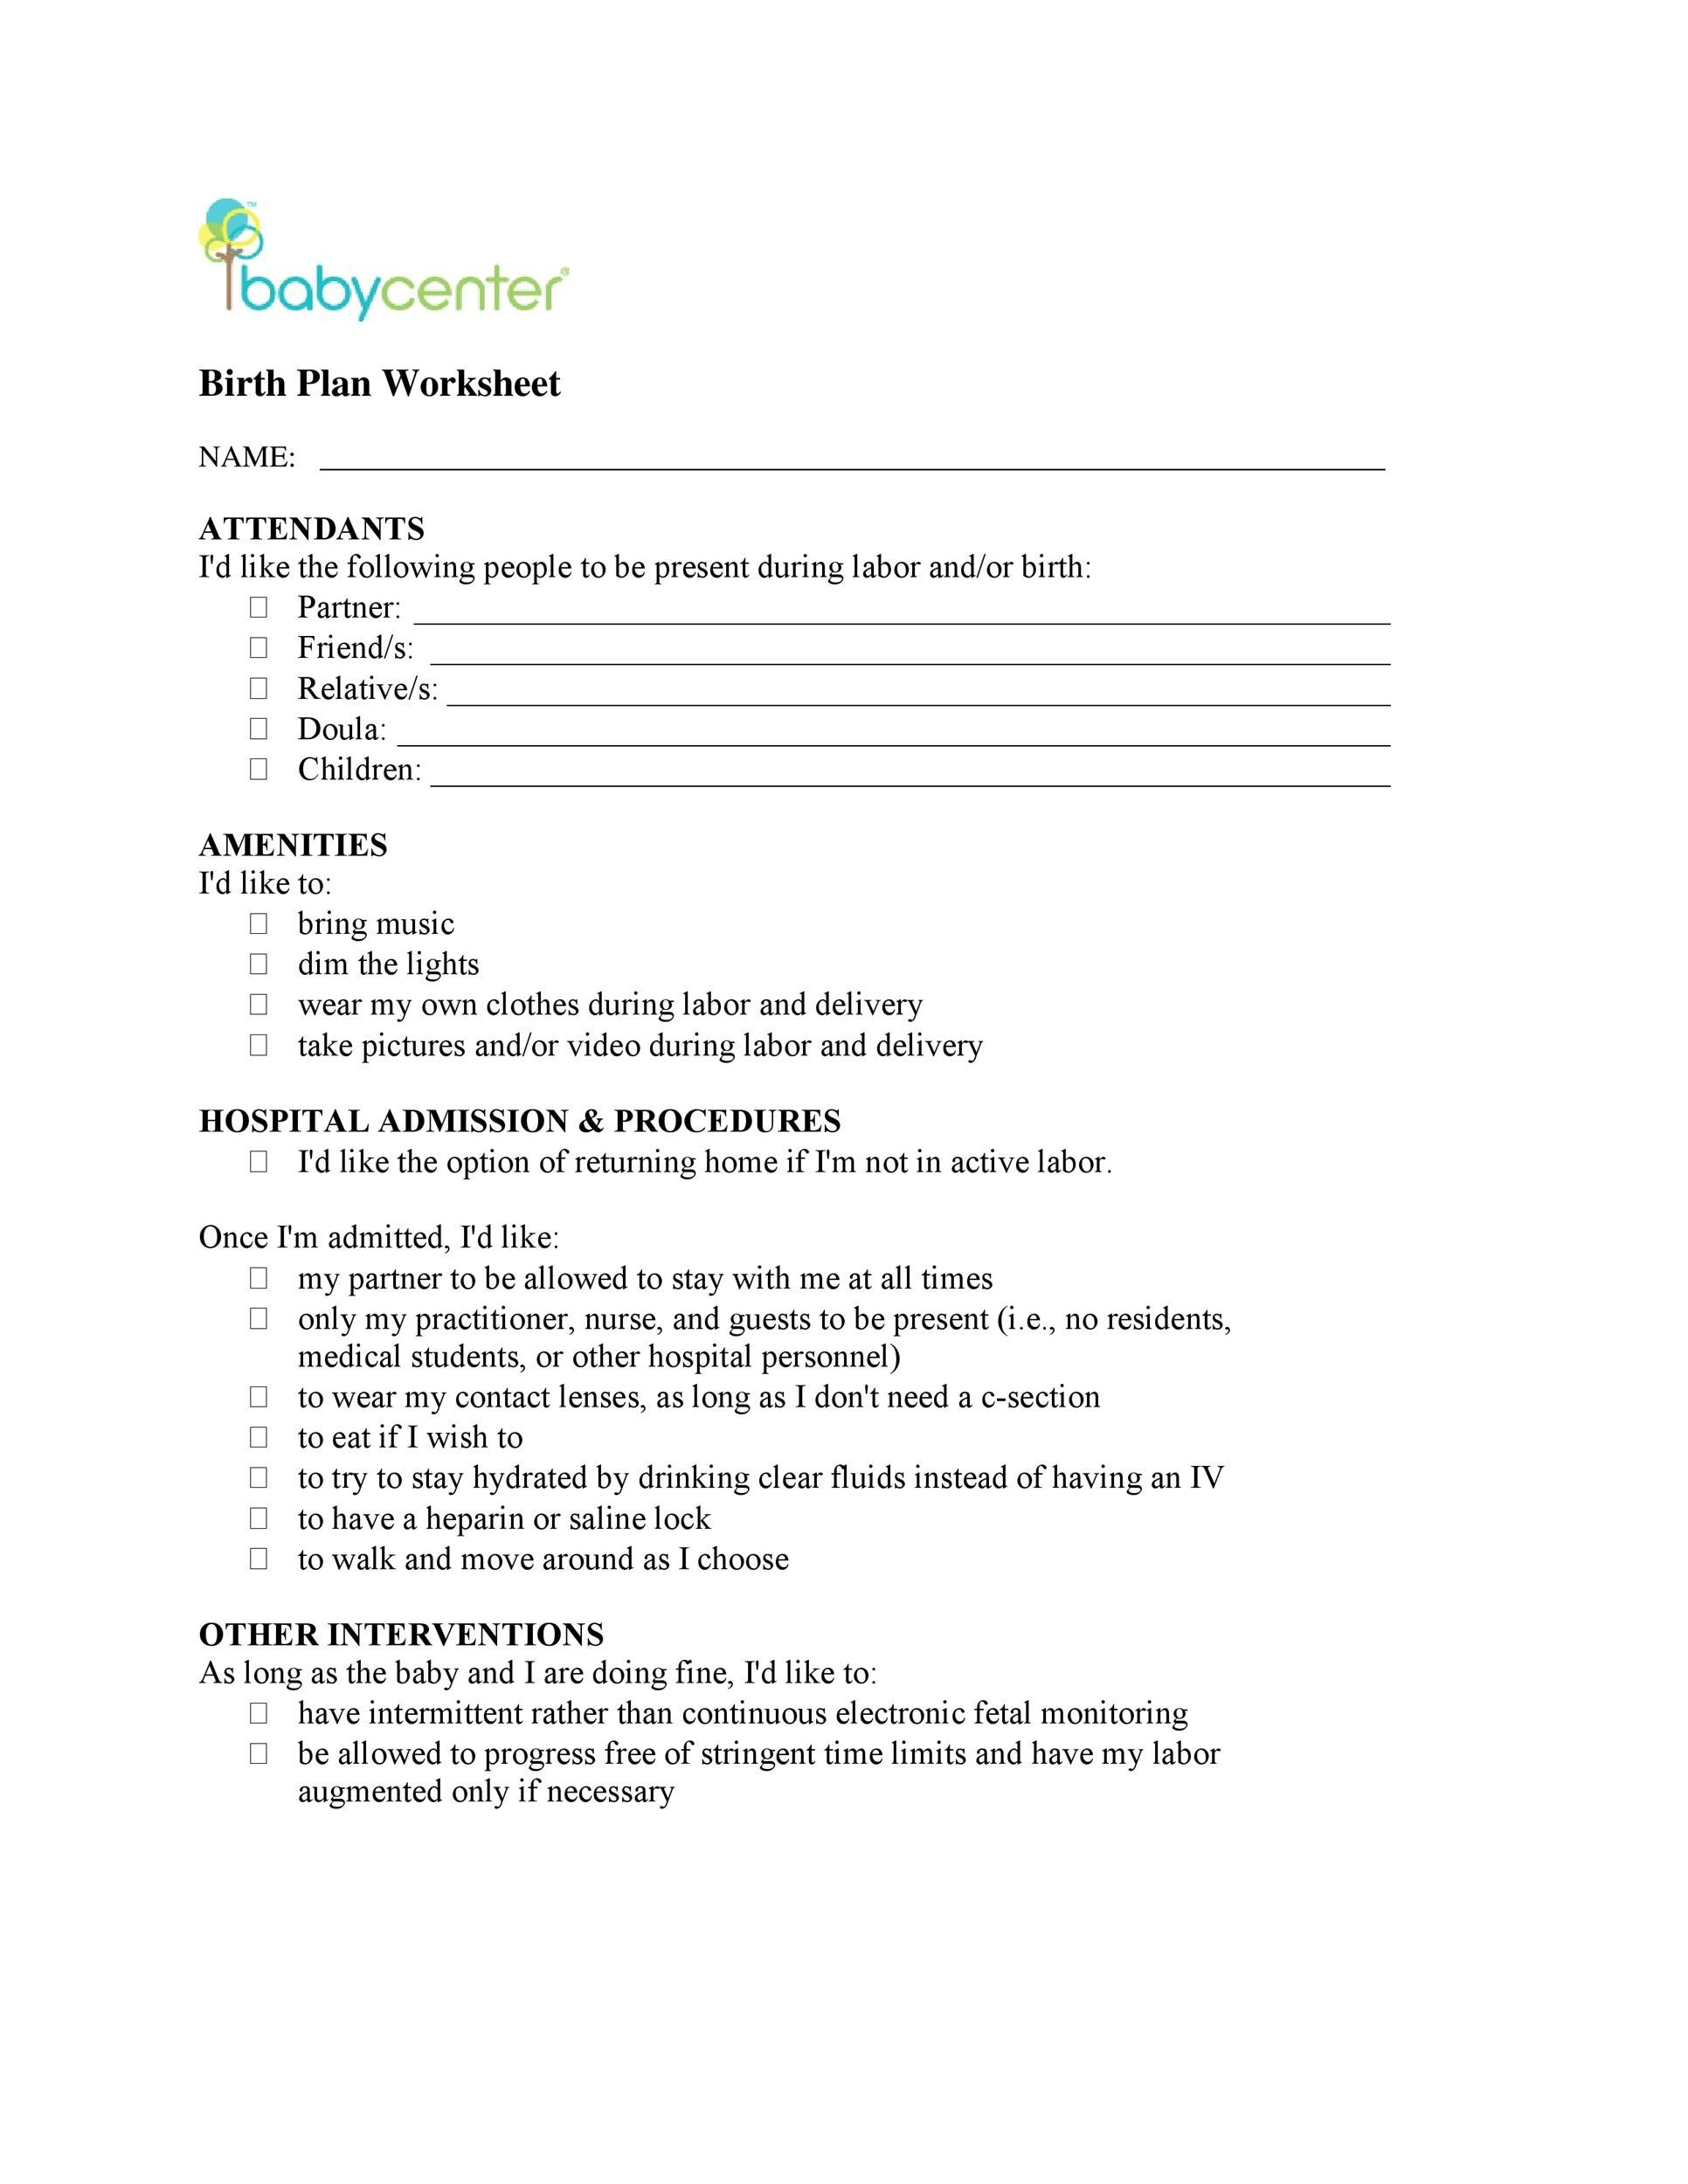 47+ Printable Birth Plan Templates [Birth Plan Checklist] - Template Lab